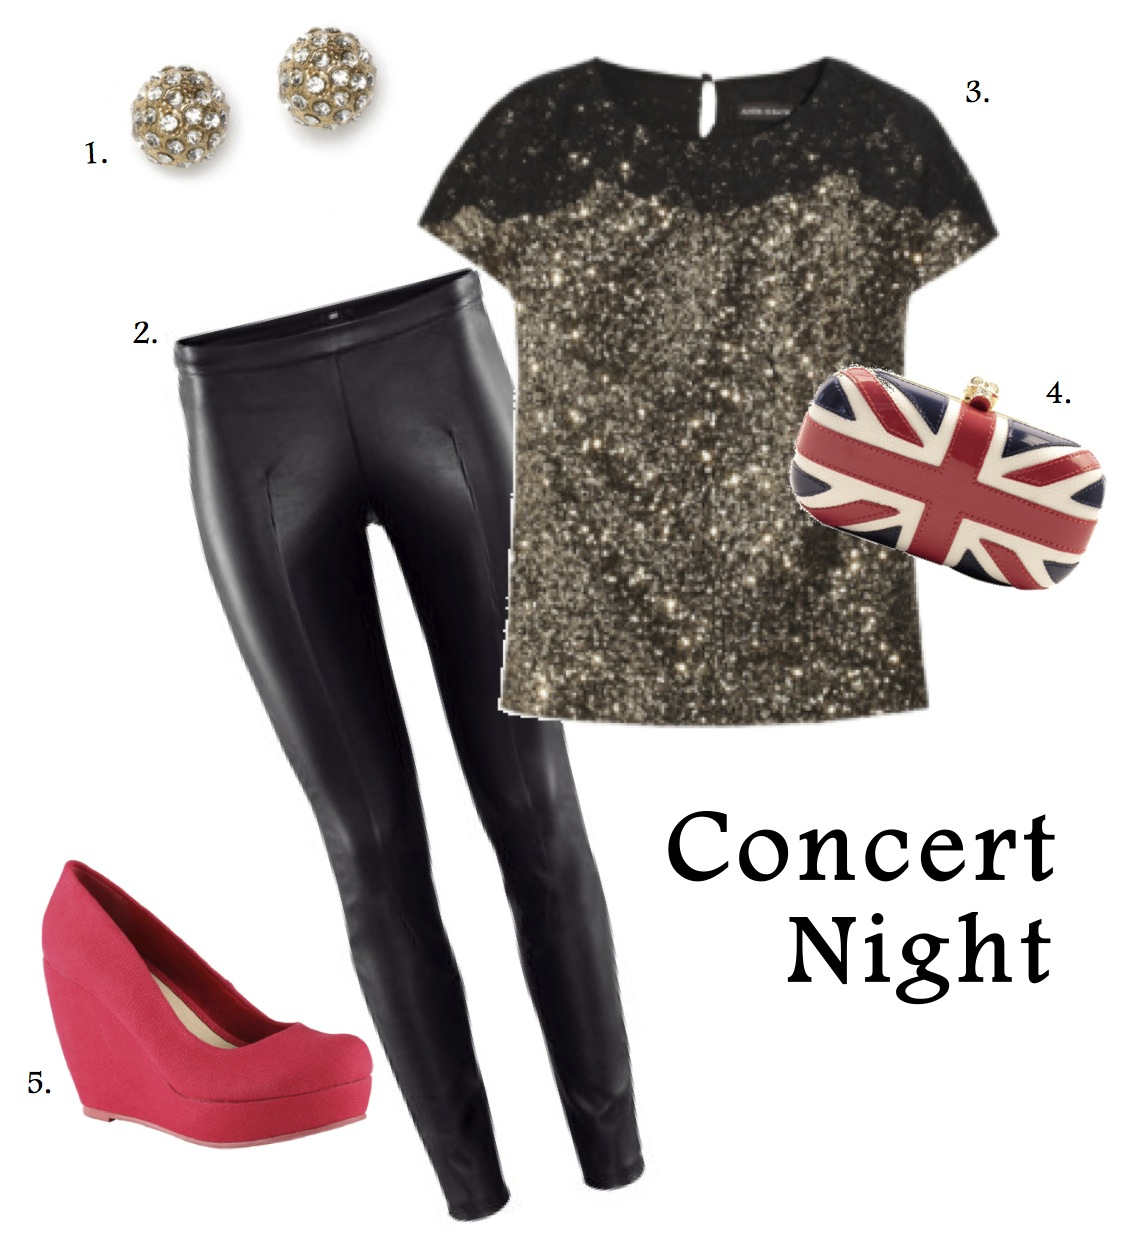 What to Wear Concert Night